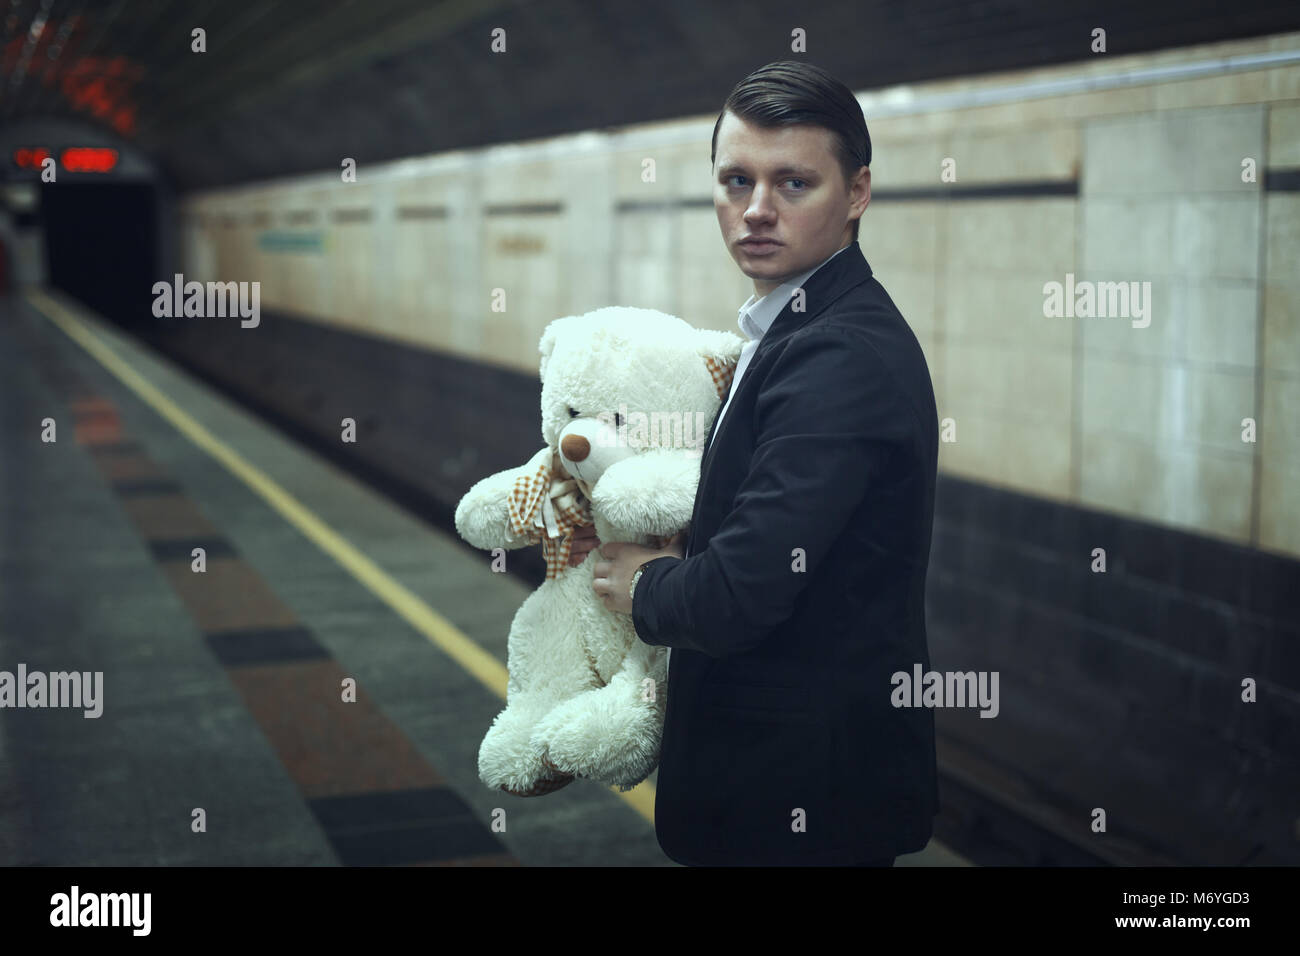 Sad young man with a teddy bear in his hands is standing at a subway station. - Stock Image